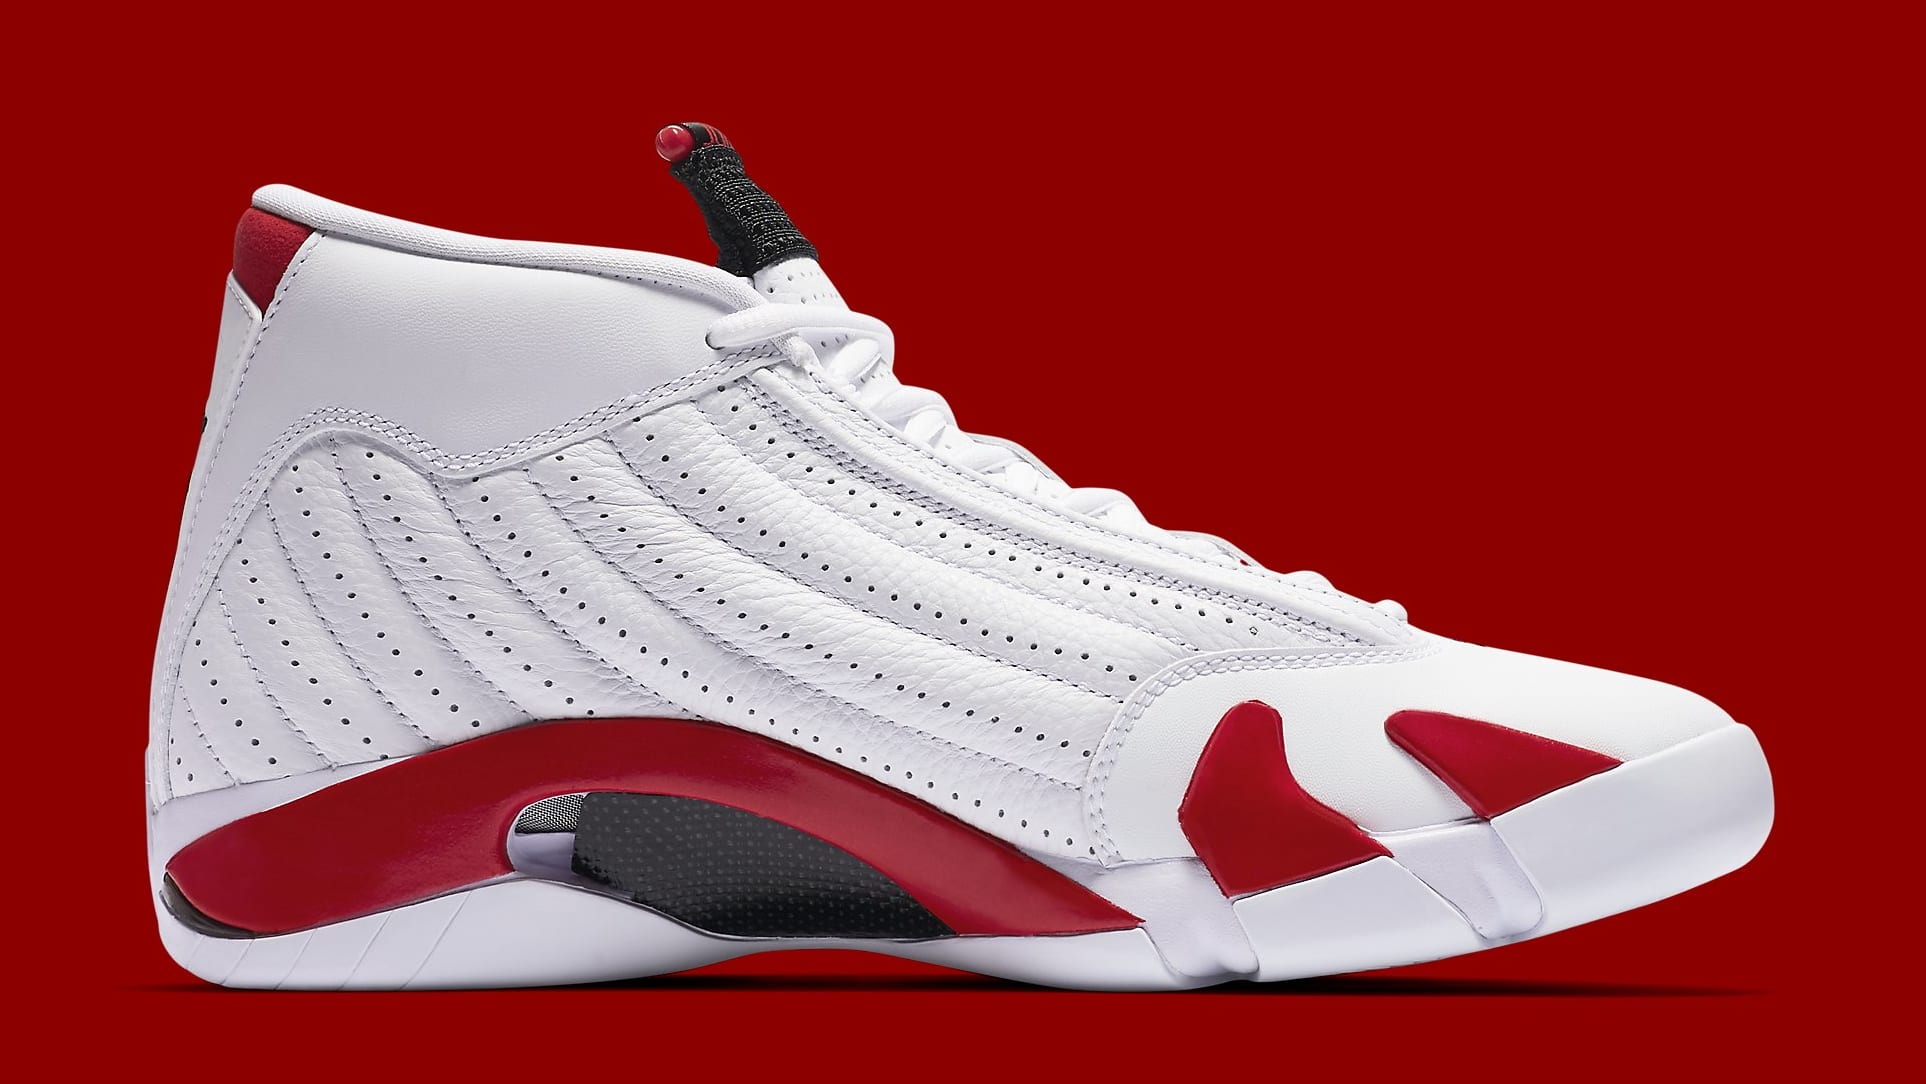 buy online 00bd7 0ac2c Image via Nike Air Jordan 14 Retro  Candy Cane 2019  487471-100 Medial